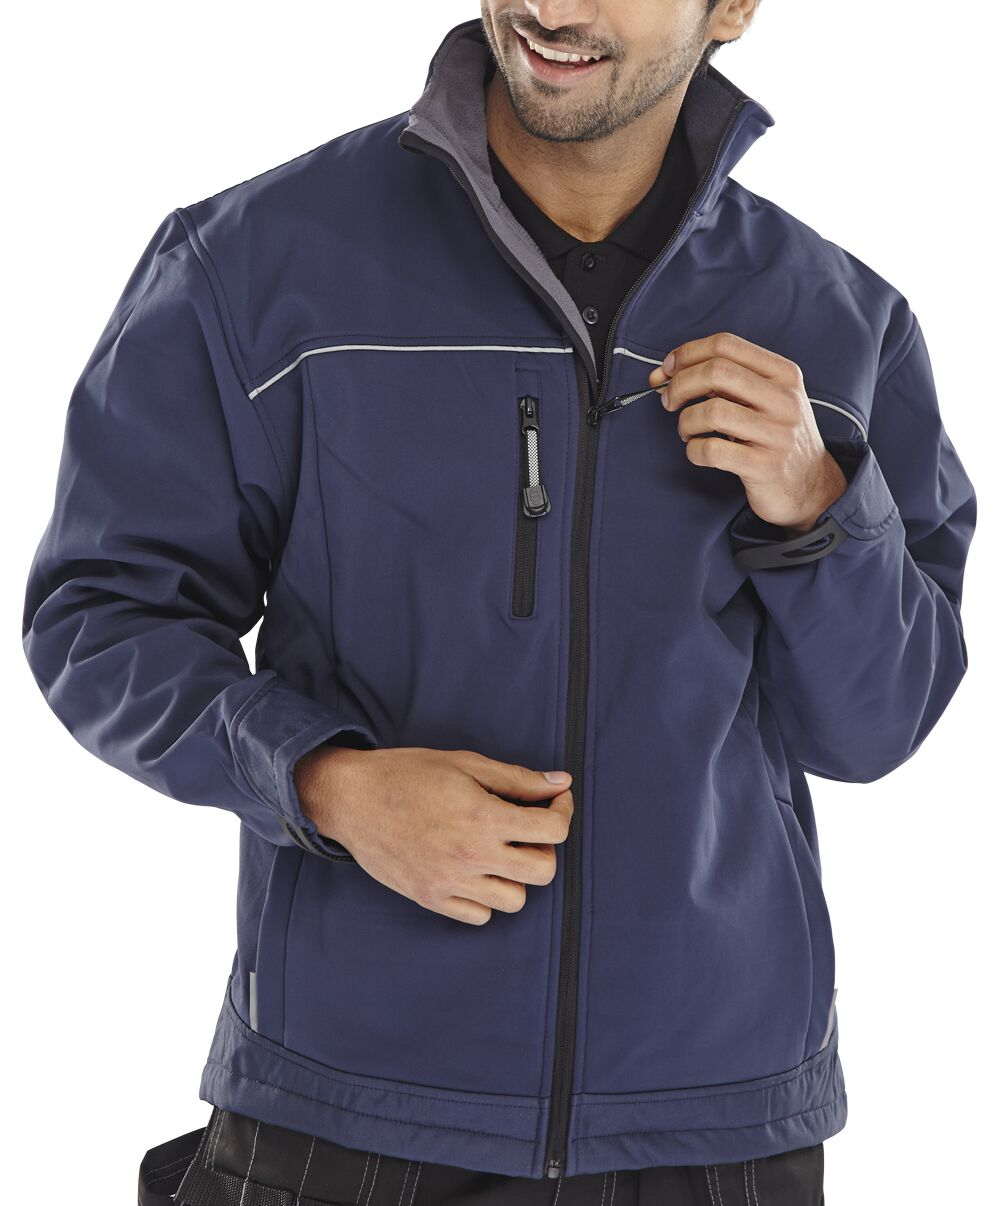 Body Protection Click Workwear Soft Shell Jacket Water Resistant Windproof XL Navy Ref SSJNXL *Approx 3 Day Leadtime*